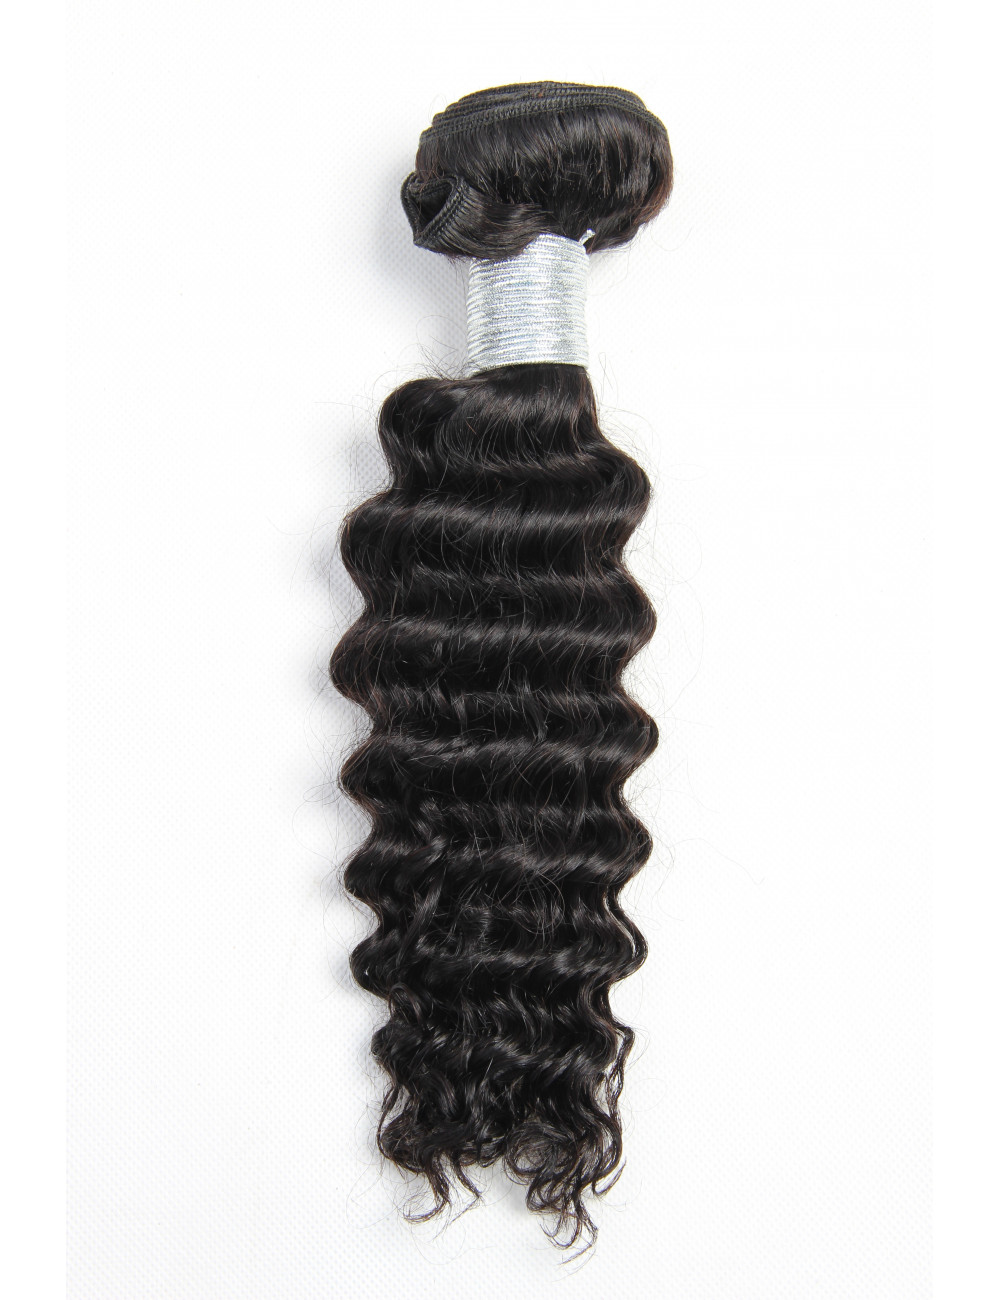 "Mèches malaisiennes kinky curly 12""."